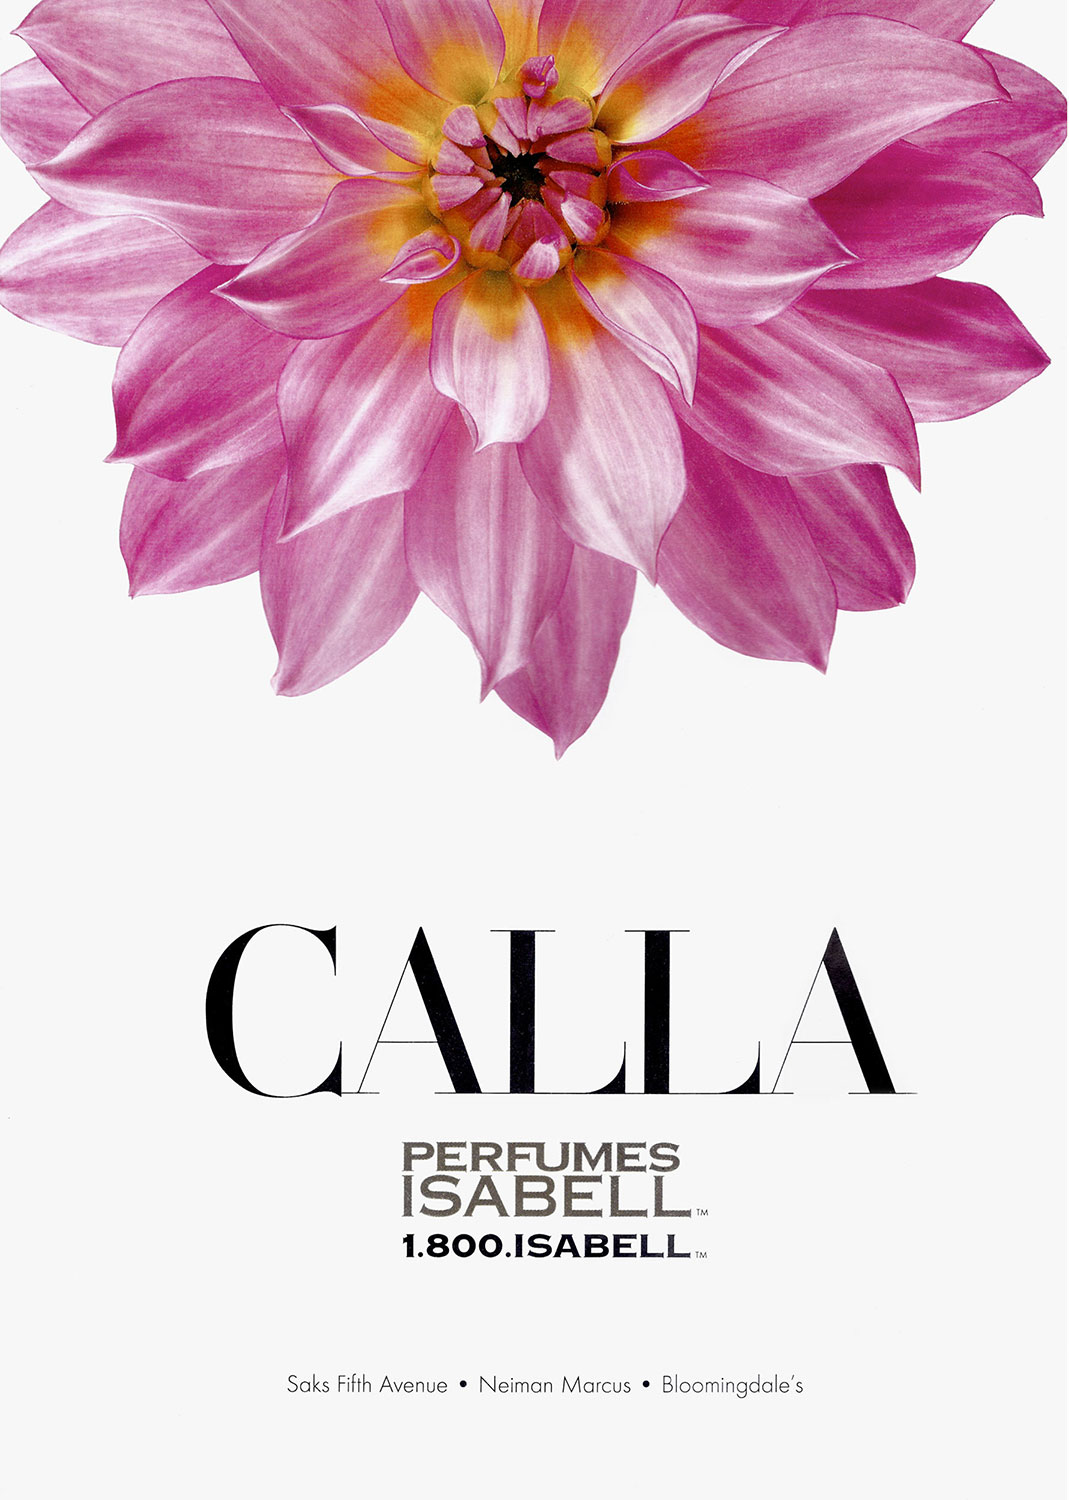 Advertising Still life Photographie Fotografie Studio Perfumes Isabel New York Calla Blume Flower Idris Kolodziej